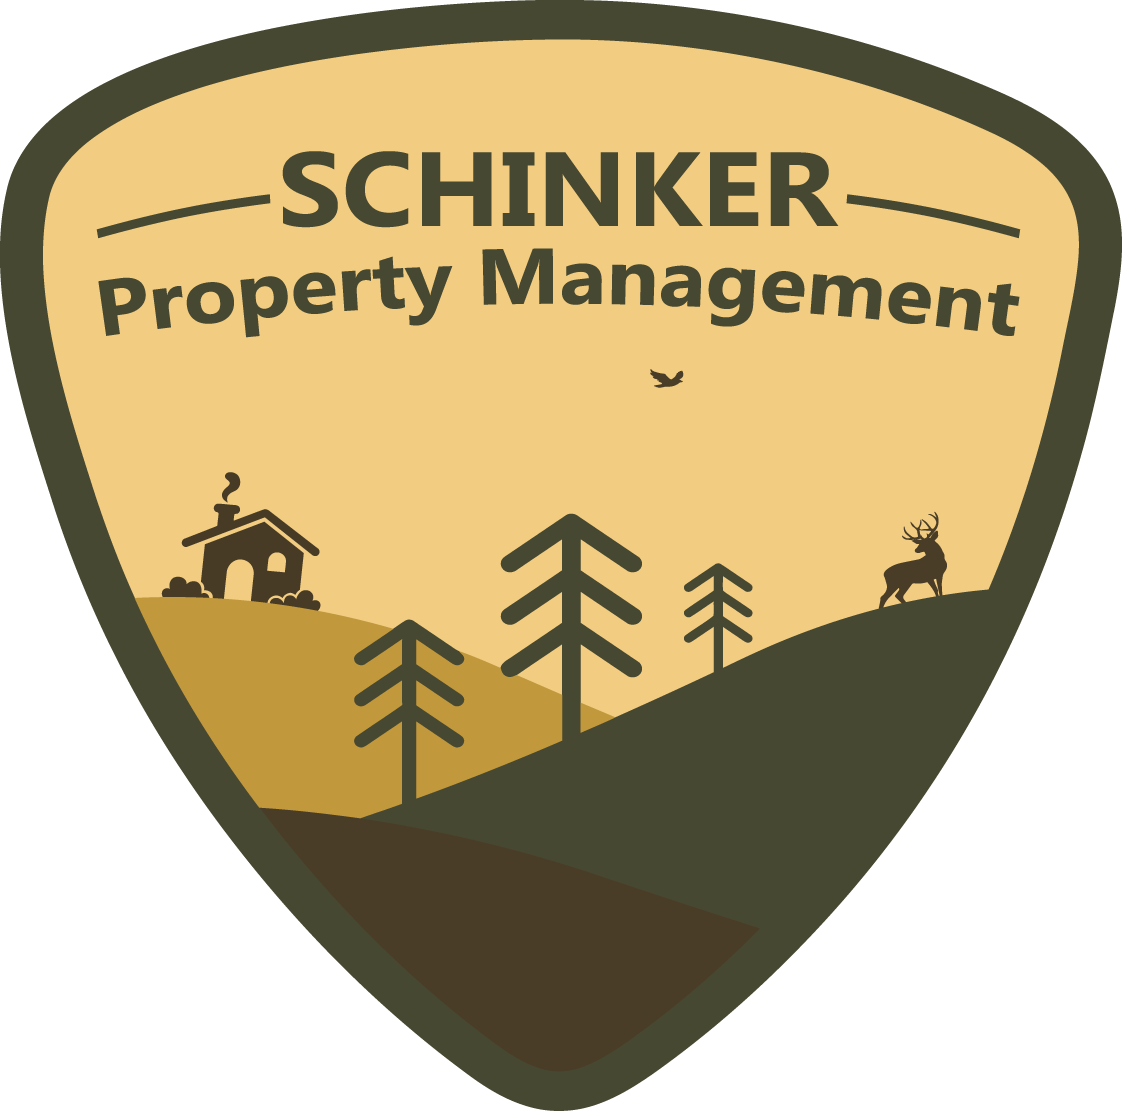 Schinker Property Management image